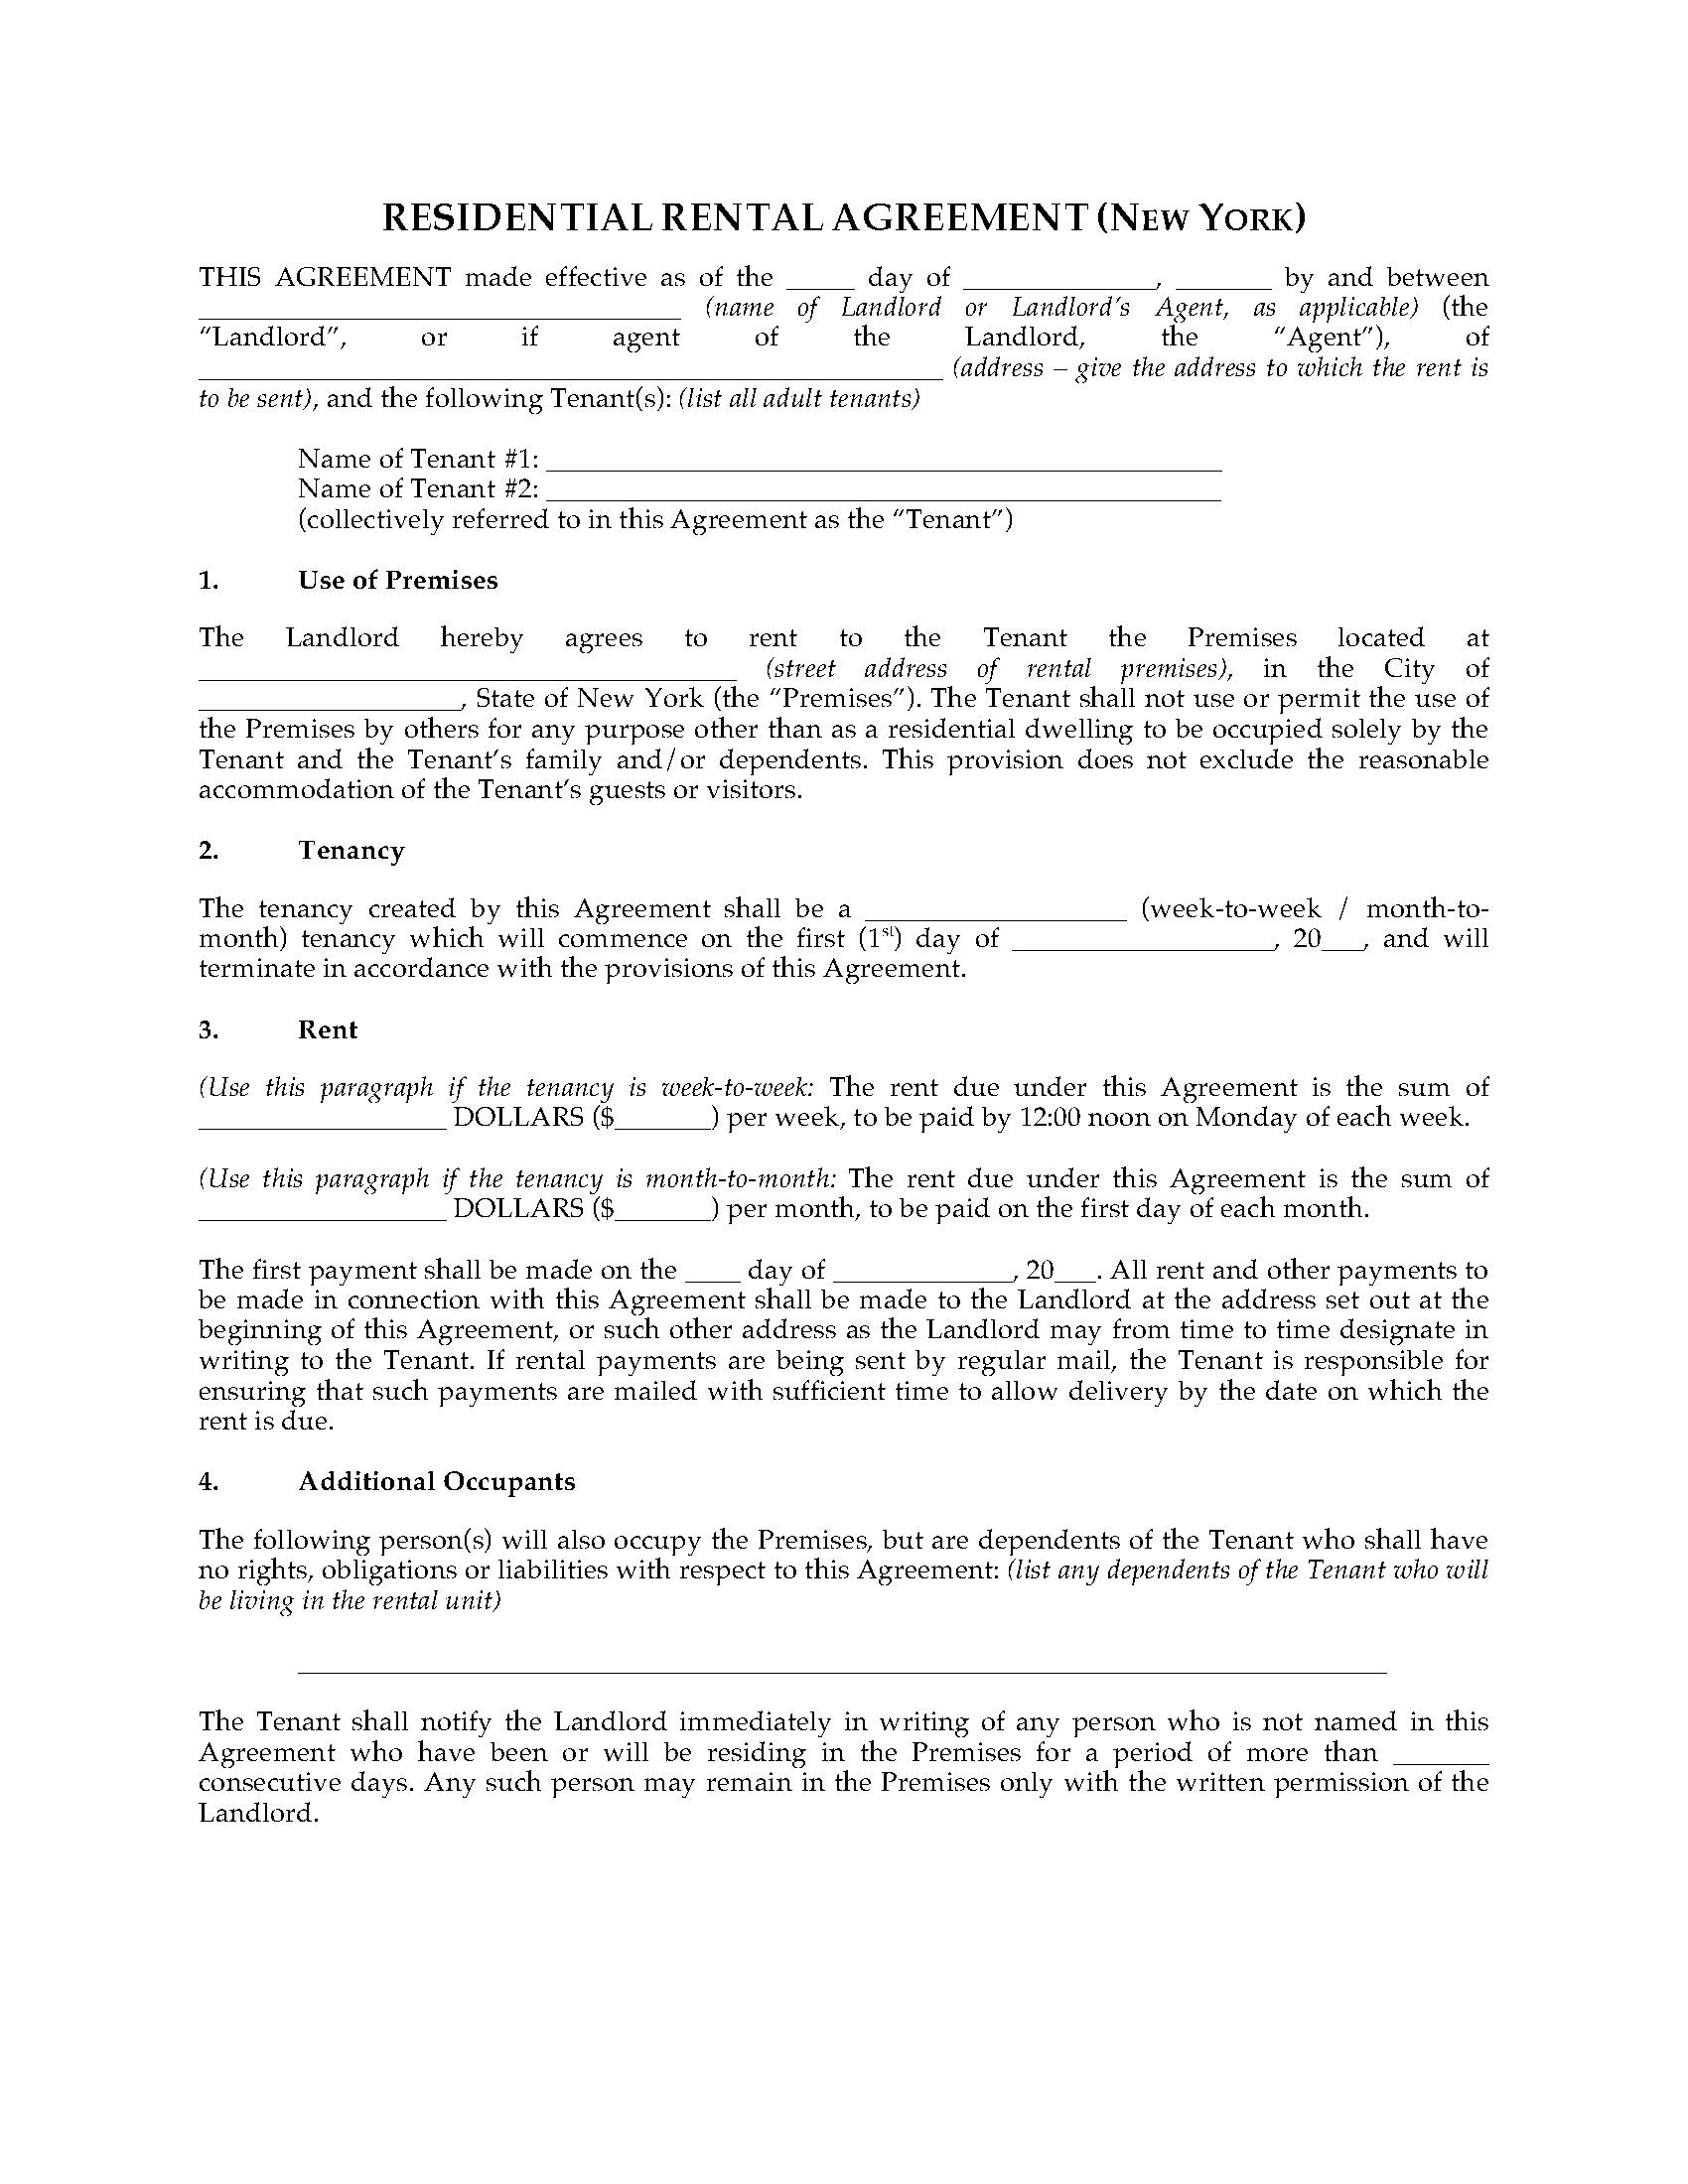 New York Rental Agreement For Residential Premises Legal Forms And